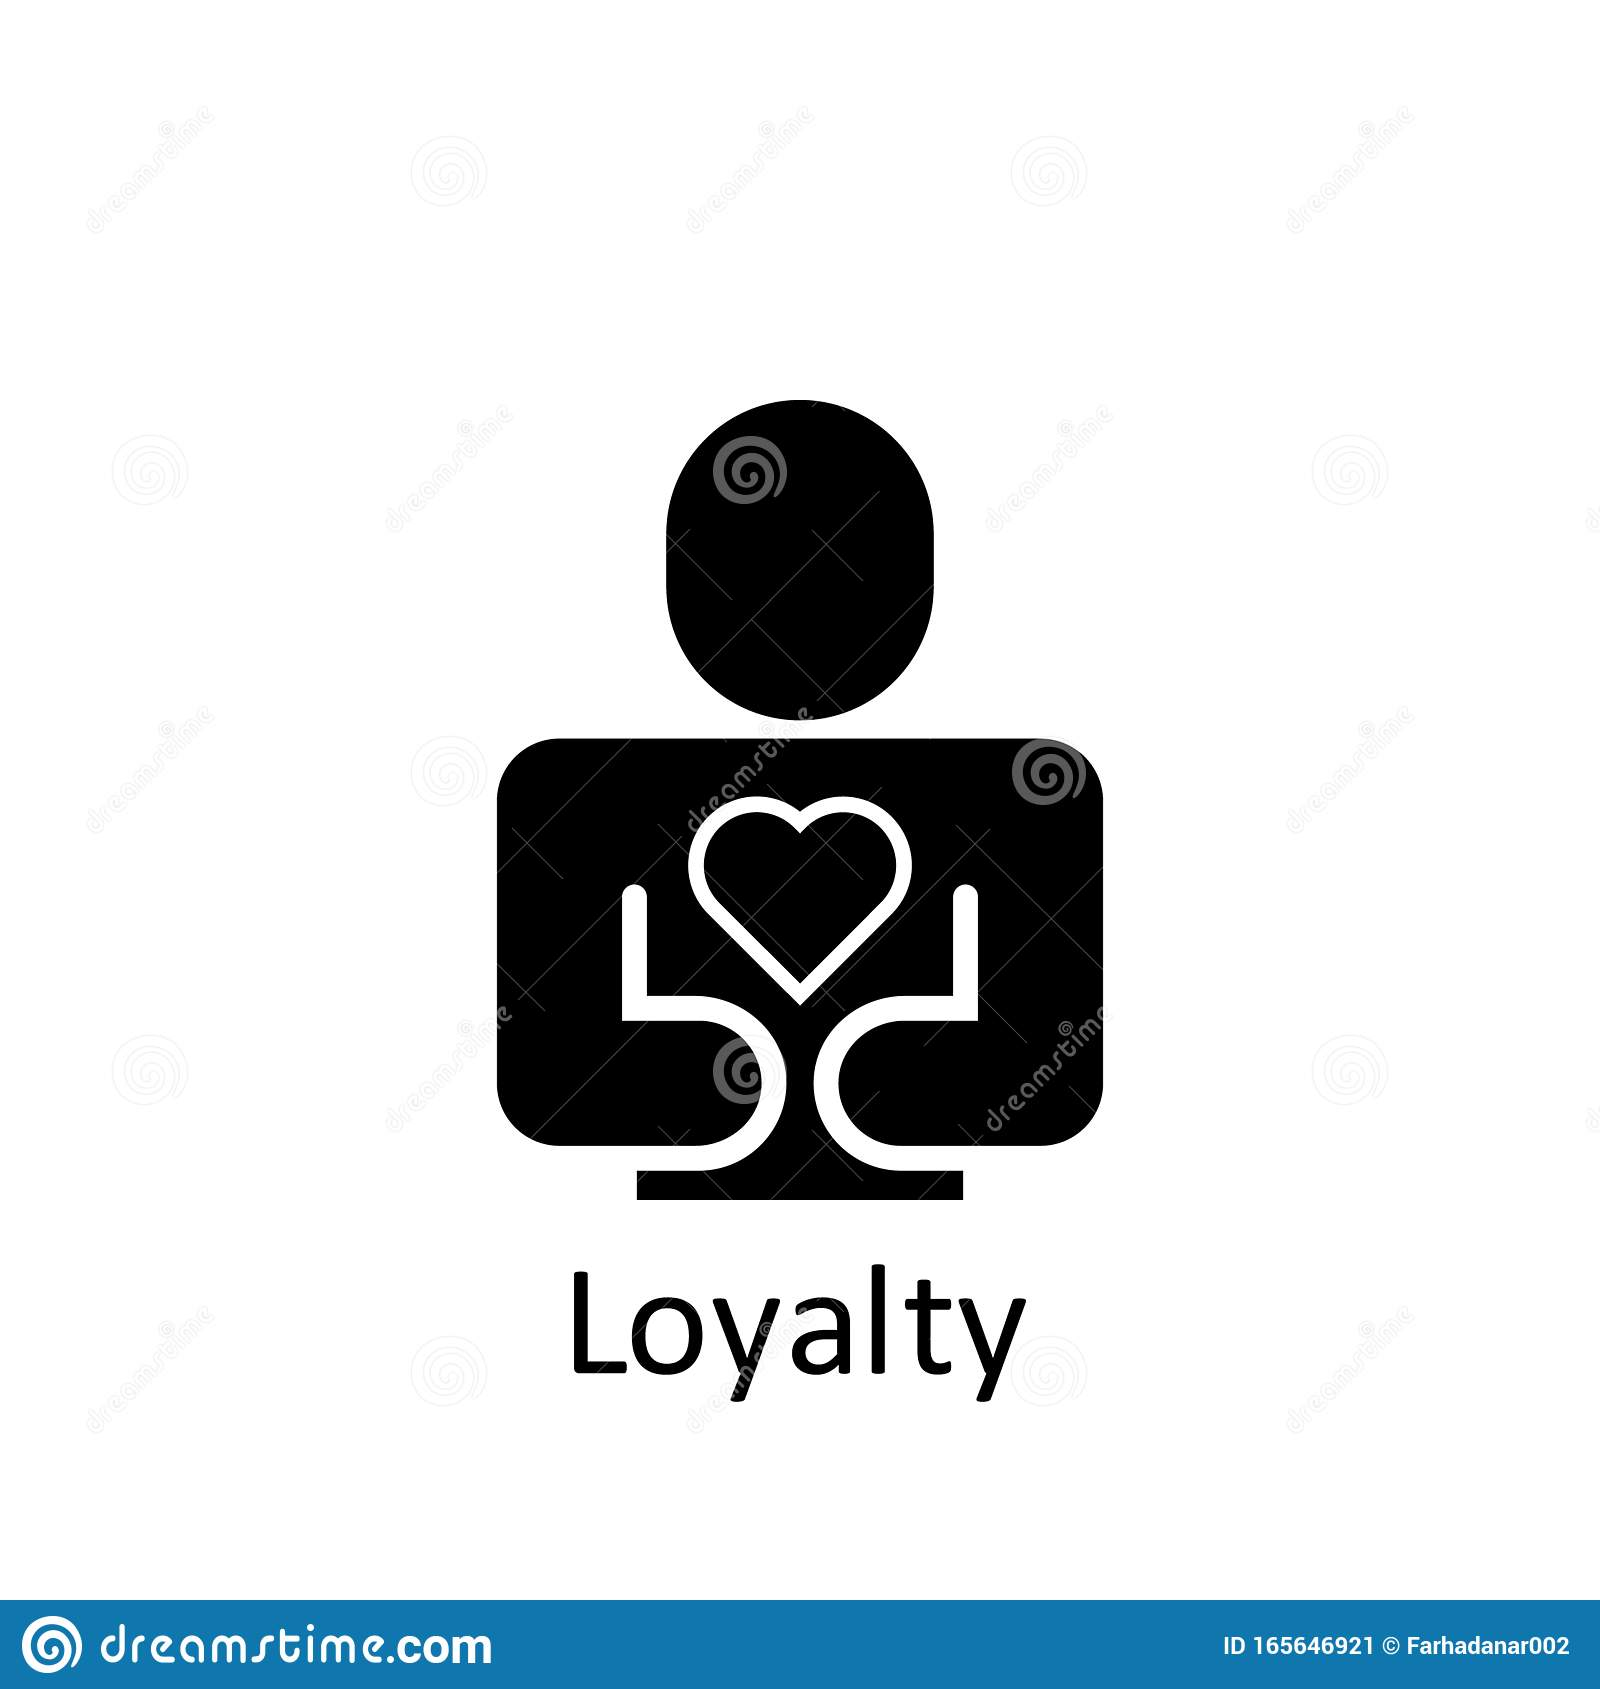 Friendship Loyalty Icon Element Of Friendship Icon Premium Quality Graphic Design Icon Signs And Symbols Collection Icon For Stock Illustration Illustration Of Symbol Relationship 165646921